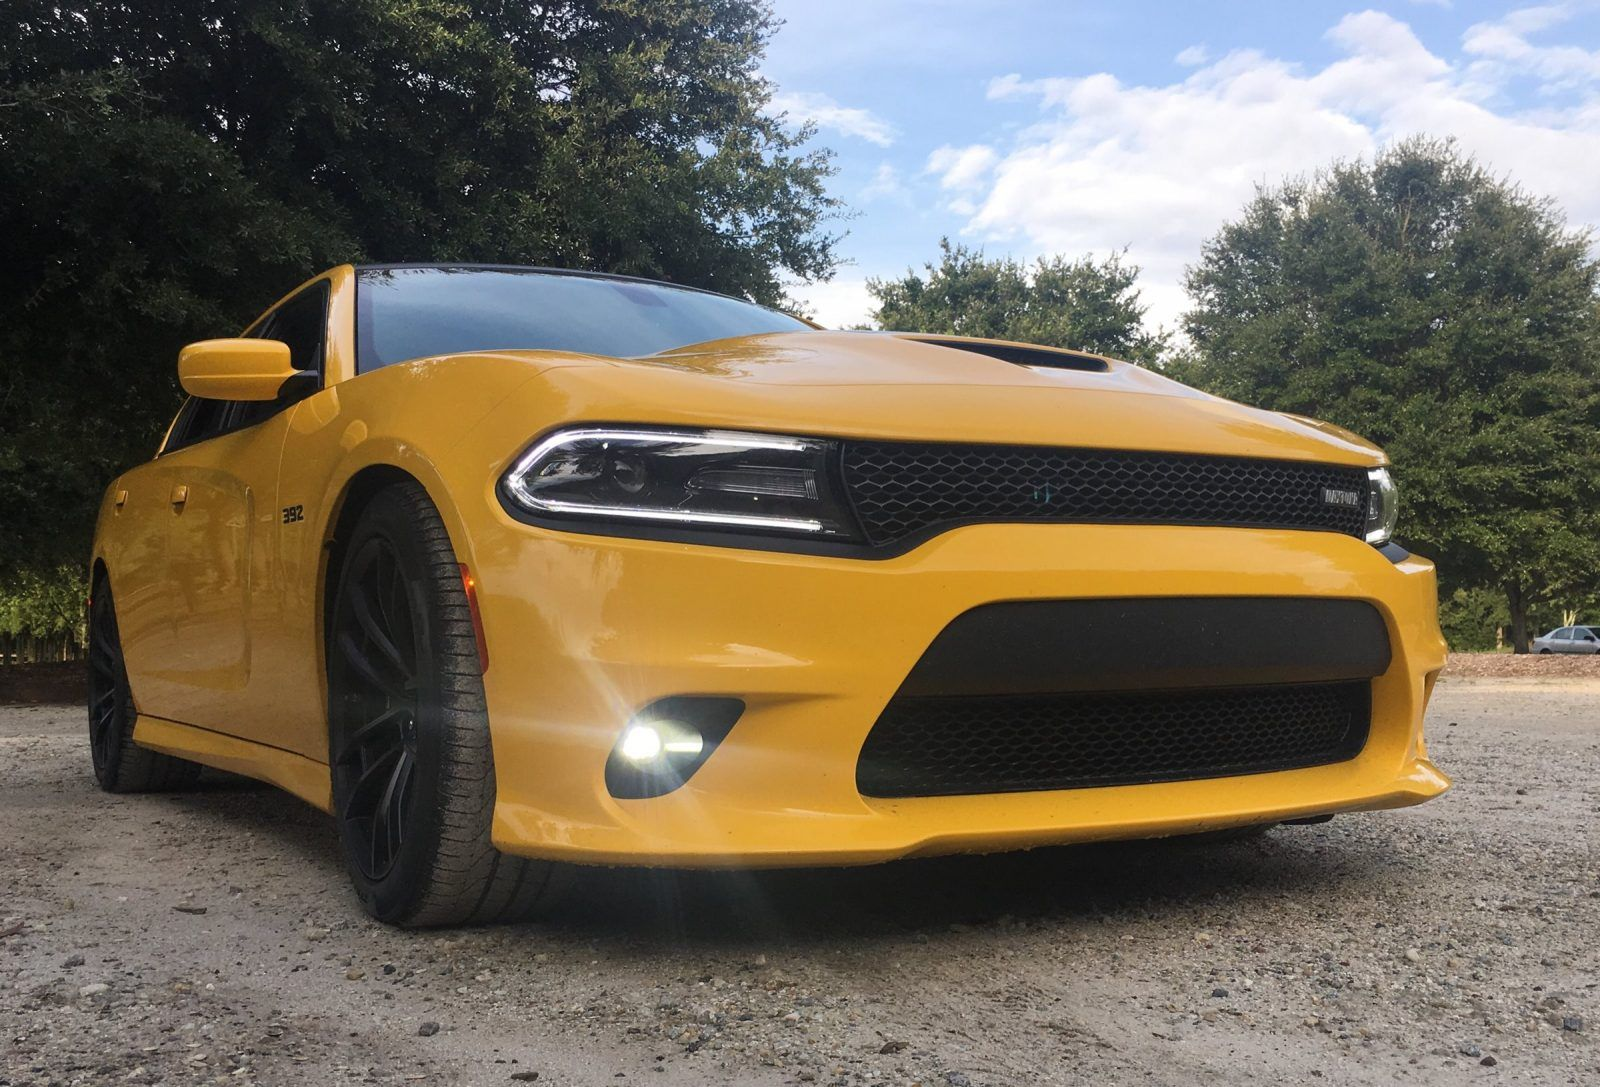 2017 Dodge Charger Daytona 392 – HD Road Test Review